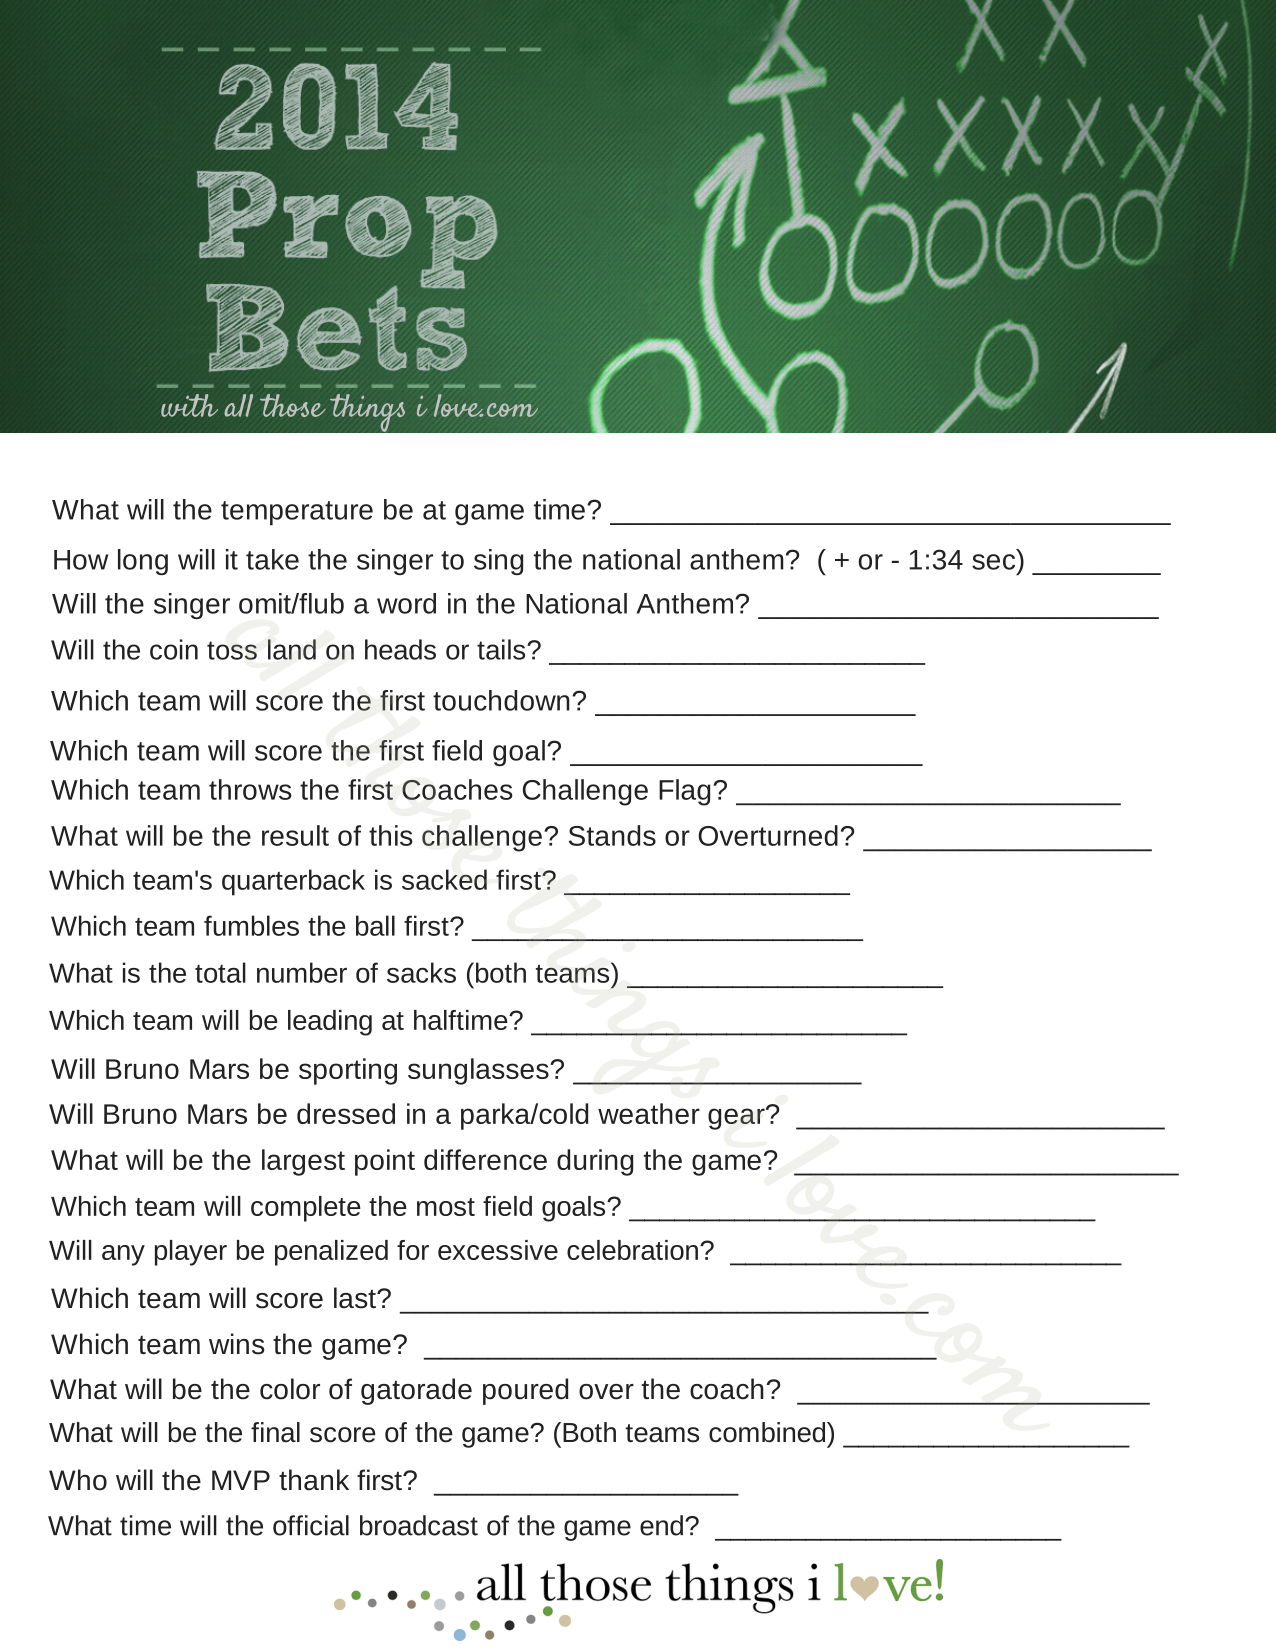 Free Super Bowl Party Games And Superbowl Prop Bets